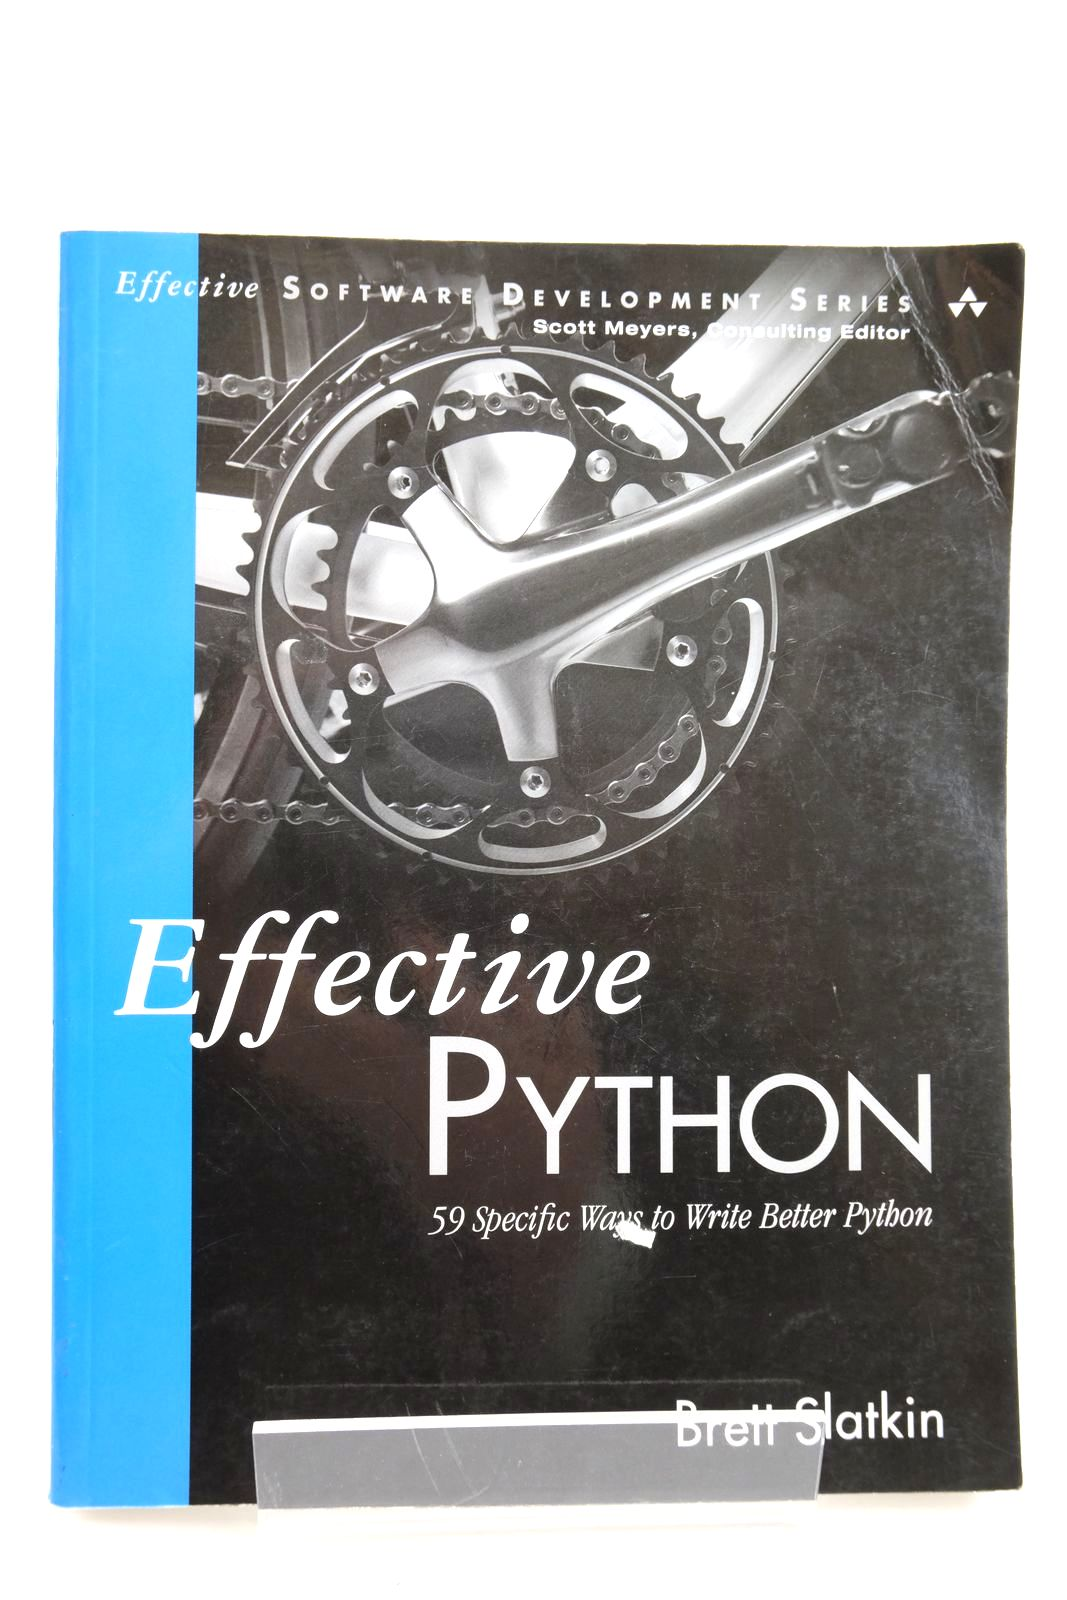 Photo of EFFECTIVE PYTHON: 59 SPECIFIC WAYS TO WRITE BETTER PYTHON written by Slatkin, Brett published by Addison-Wesley (STOCK CODE: 2134105)  for sale by Stella & Rose's Books